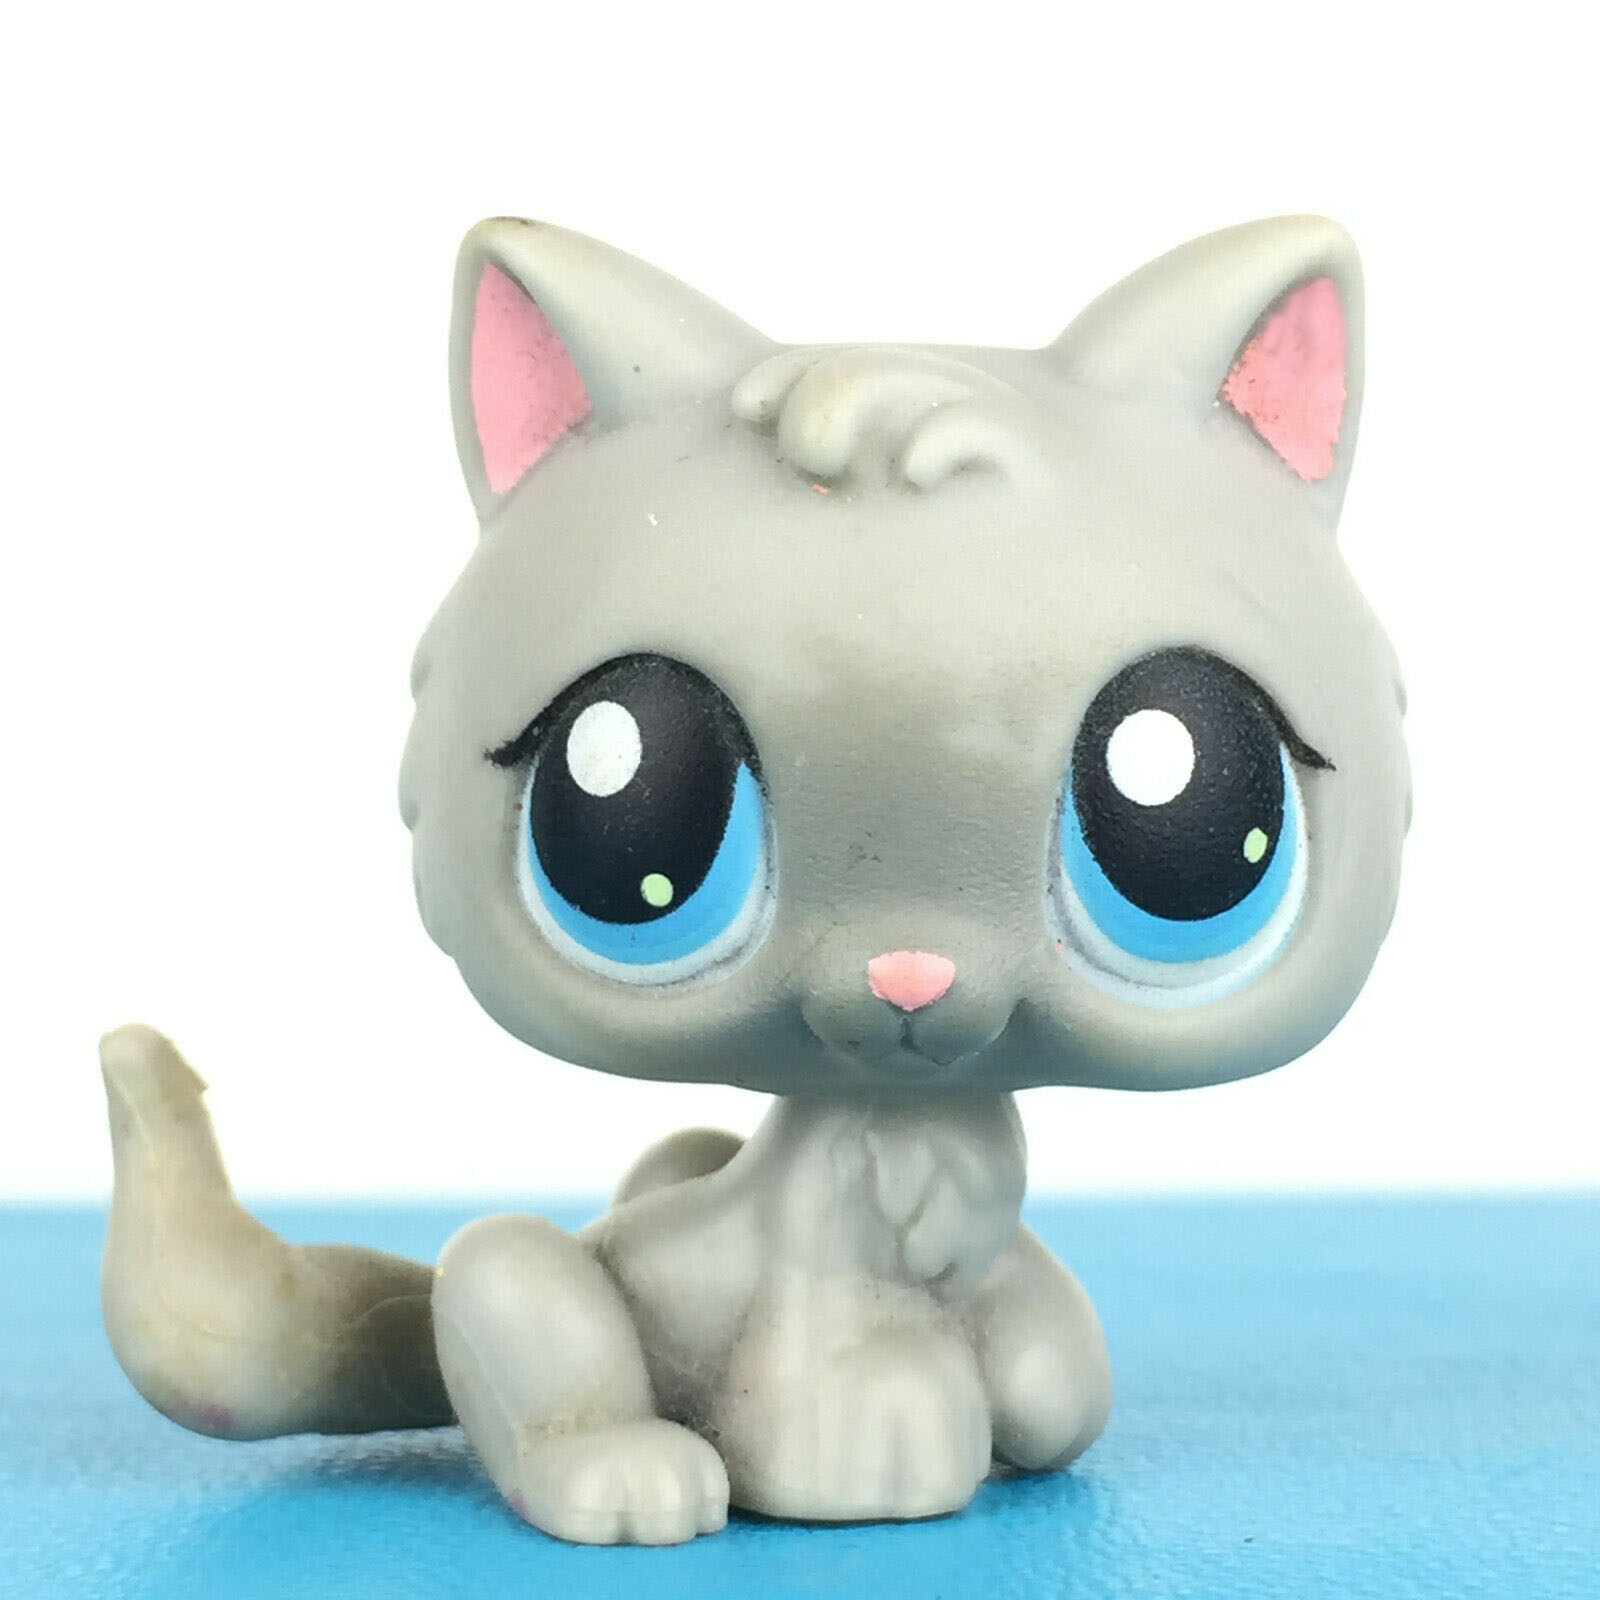 Rare Original Pet Shop Toys Cat #66 Light Grey Baby Kitty Cute Animal Kitten For Kids Collection